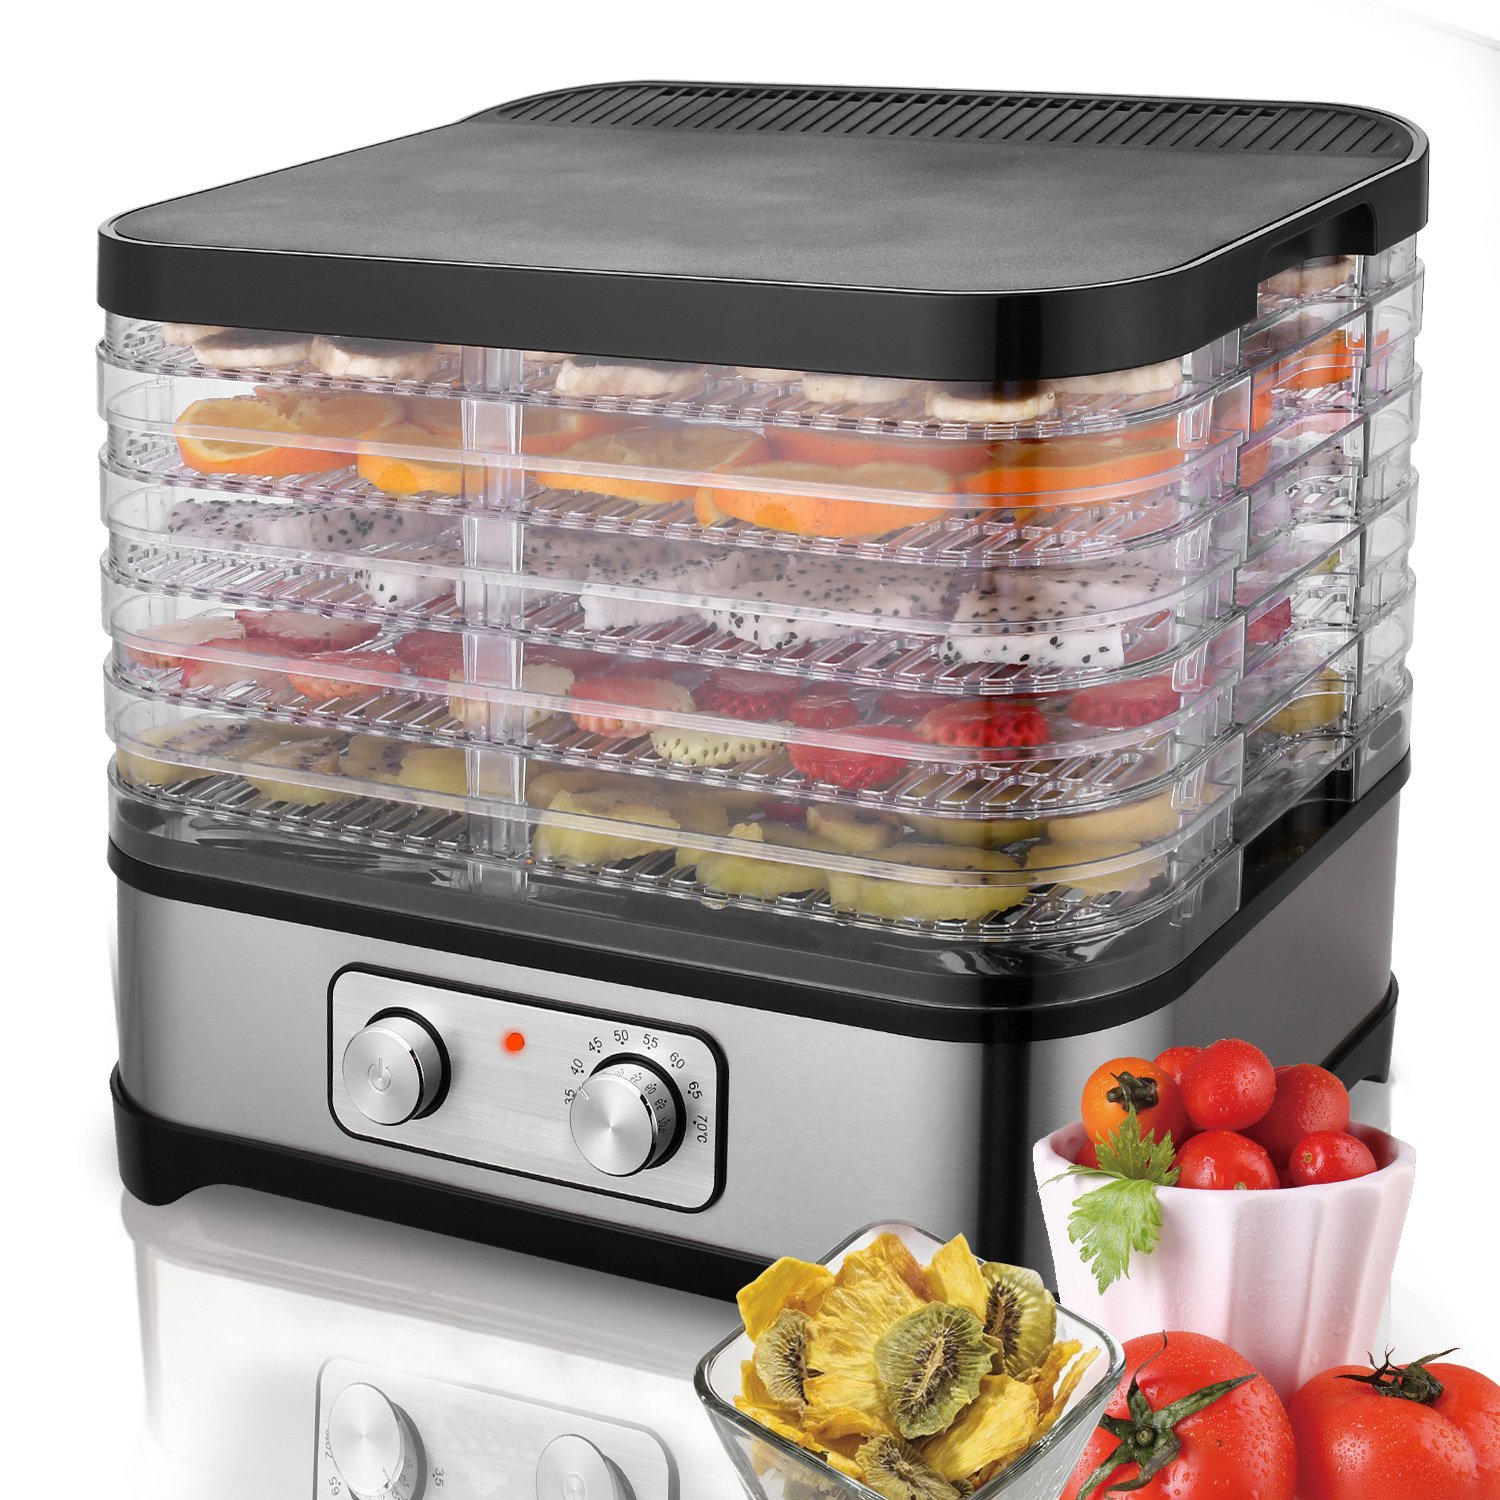 Electric Food Dehydrator, Stainless Steel Fruit Dehydrater Including 5 Stackable Trays, Digital Temperature Settings and Timer, Noiseless and BPA Free [US STOCK] (Food Dehydrator)